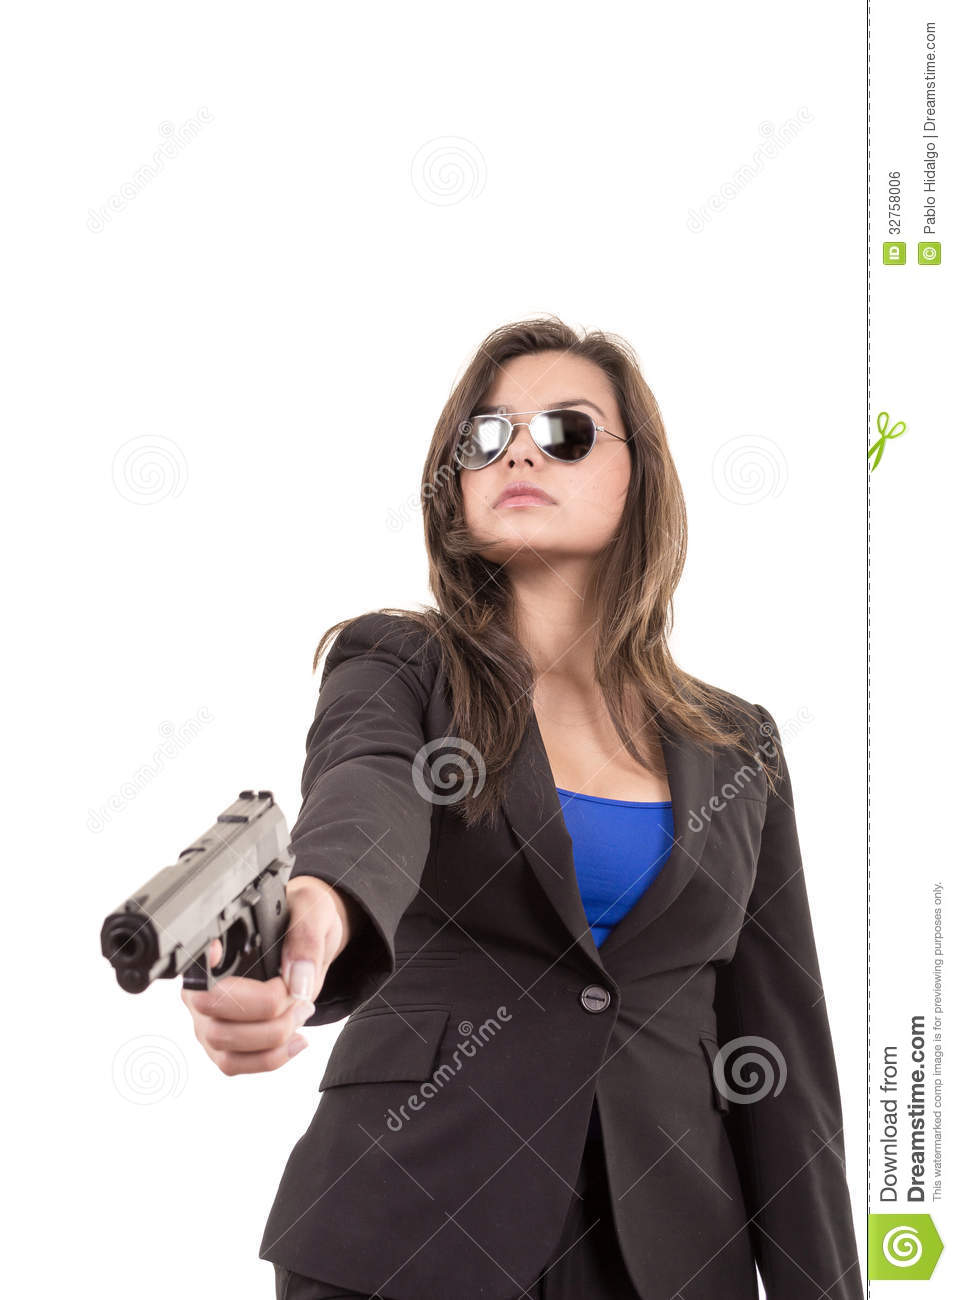 Woman In Suit And Sunglasses Holding A Gun Royalty Free ...